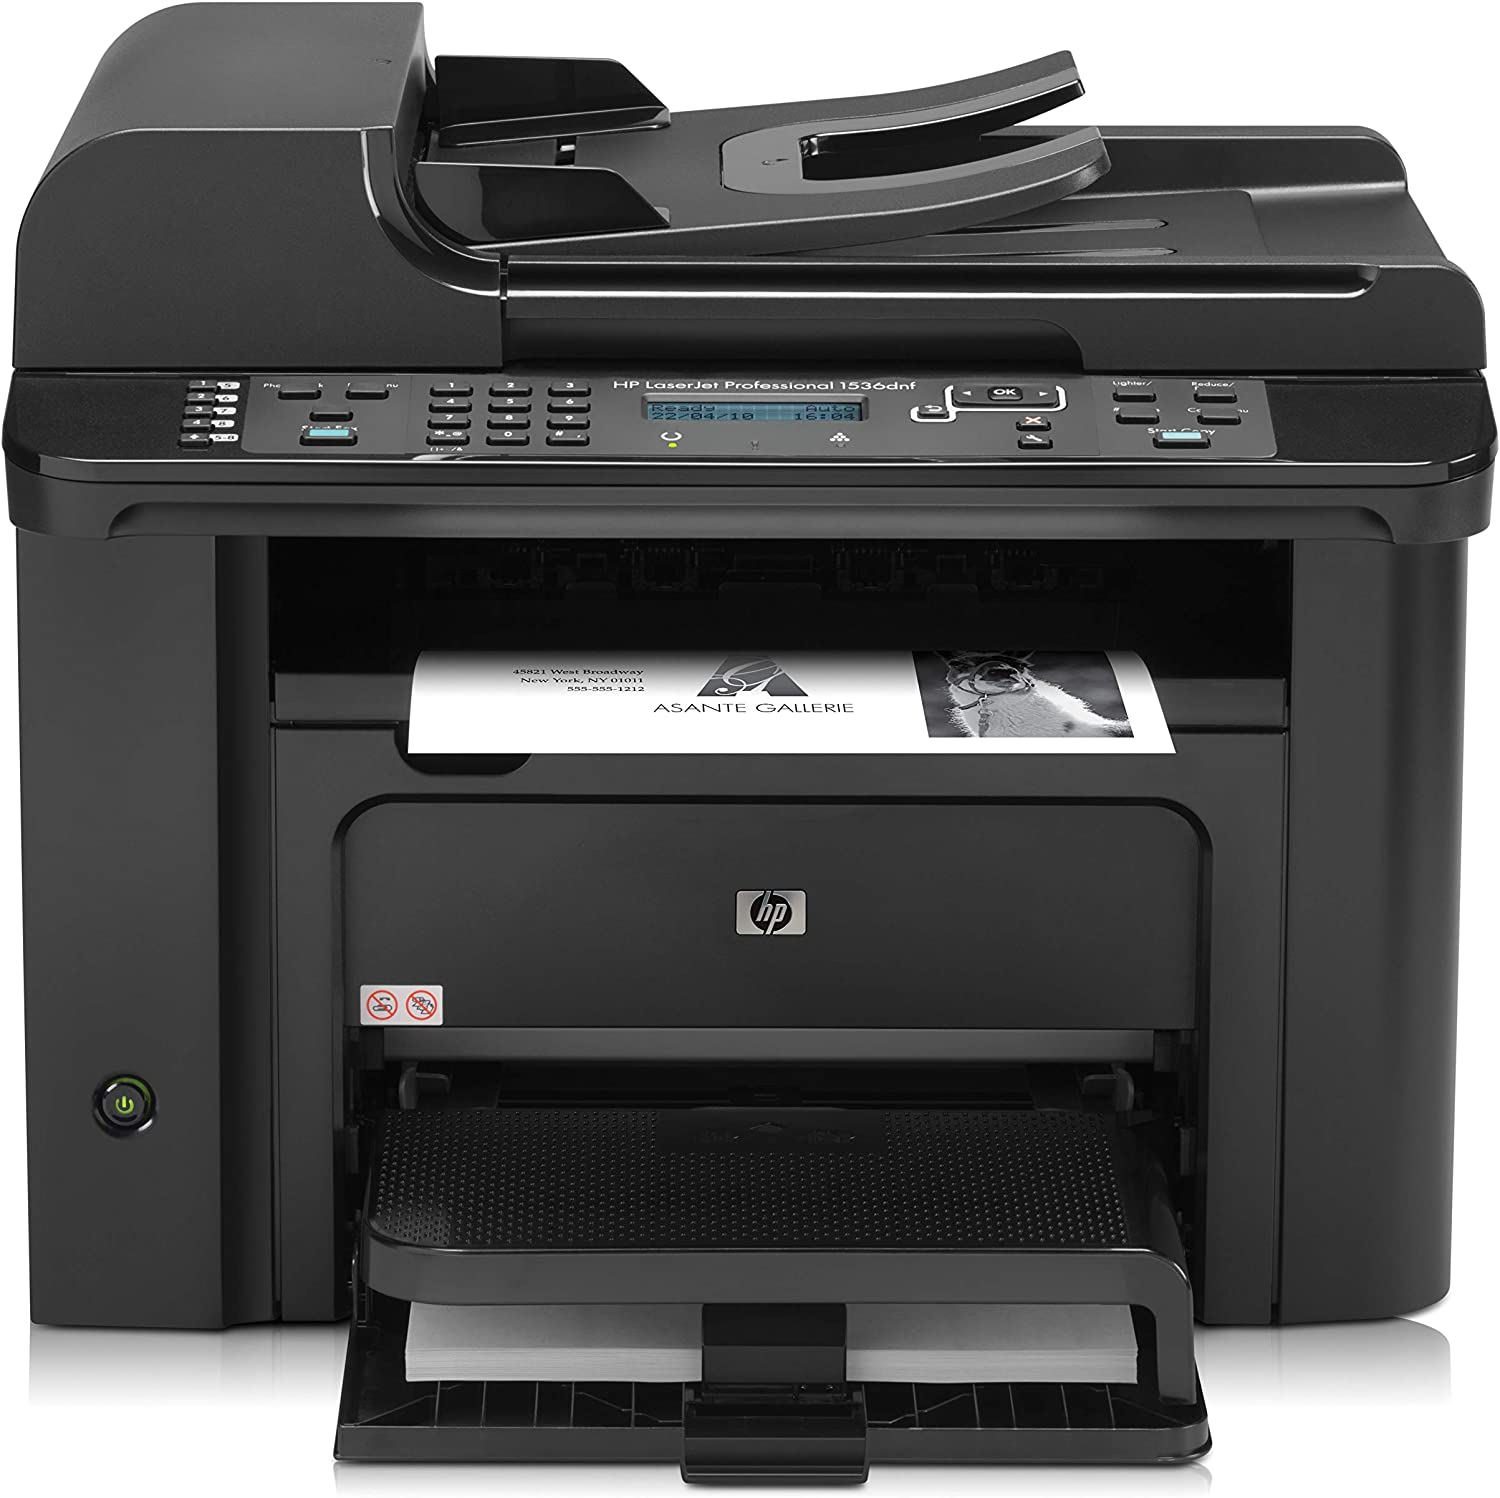 Hewlett Packard Laserjet Pro M1536DNf Multifunction Printer (CE538A)